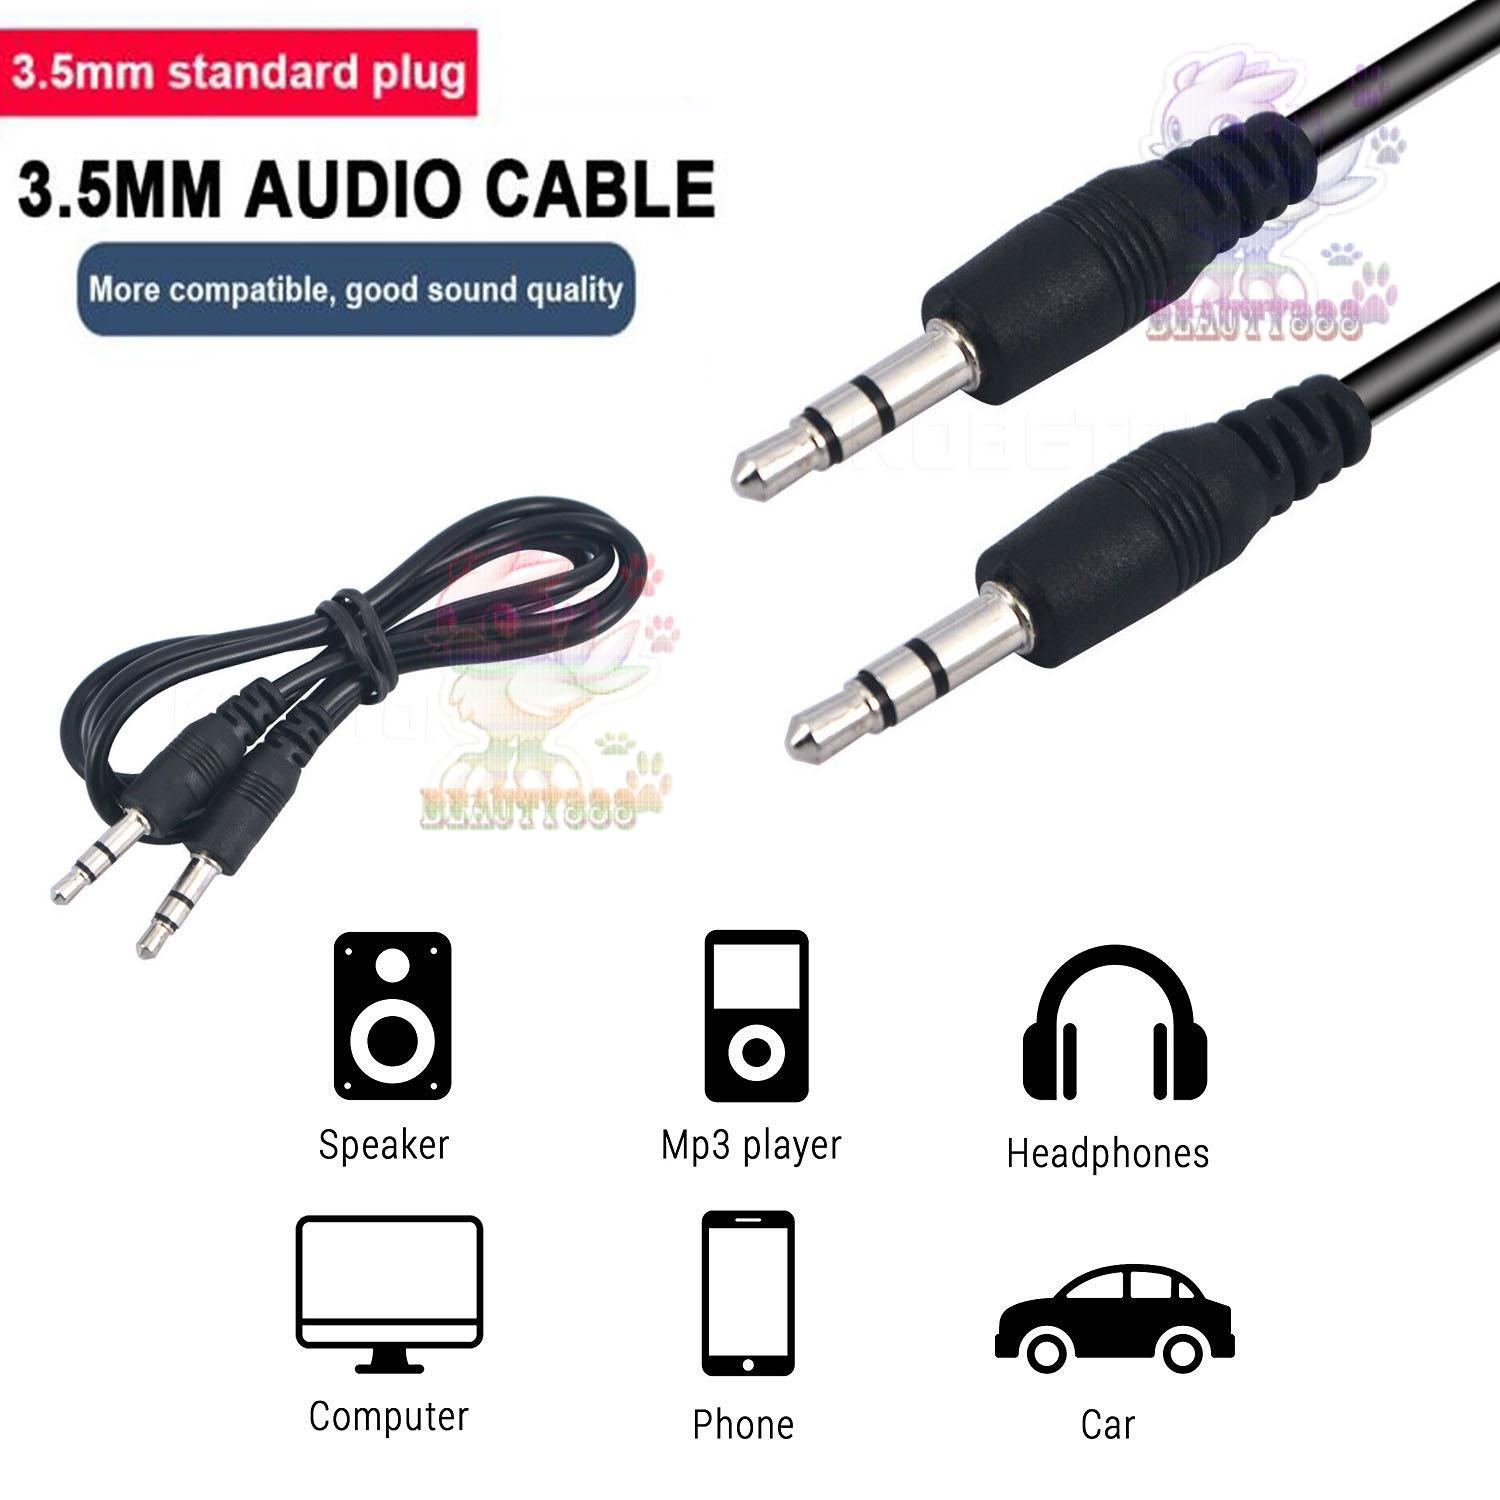 Aux Cable 3.5mm to 3.5 mm Male to Male Jack Car Audio Cable Line Cord for Phone MP3 CD Speaker / Cable Audio Male To Male / Kabel Audio Aux Male To Male / Cable Audio Aux / Cable Aux Audio / Kabel Aux Audio - Warna Random